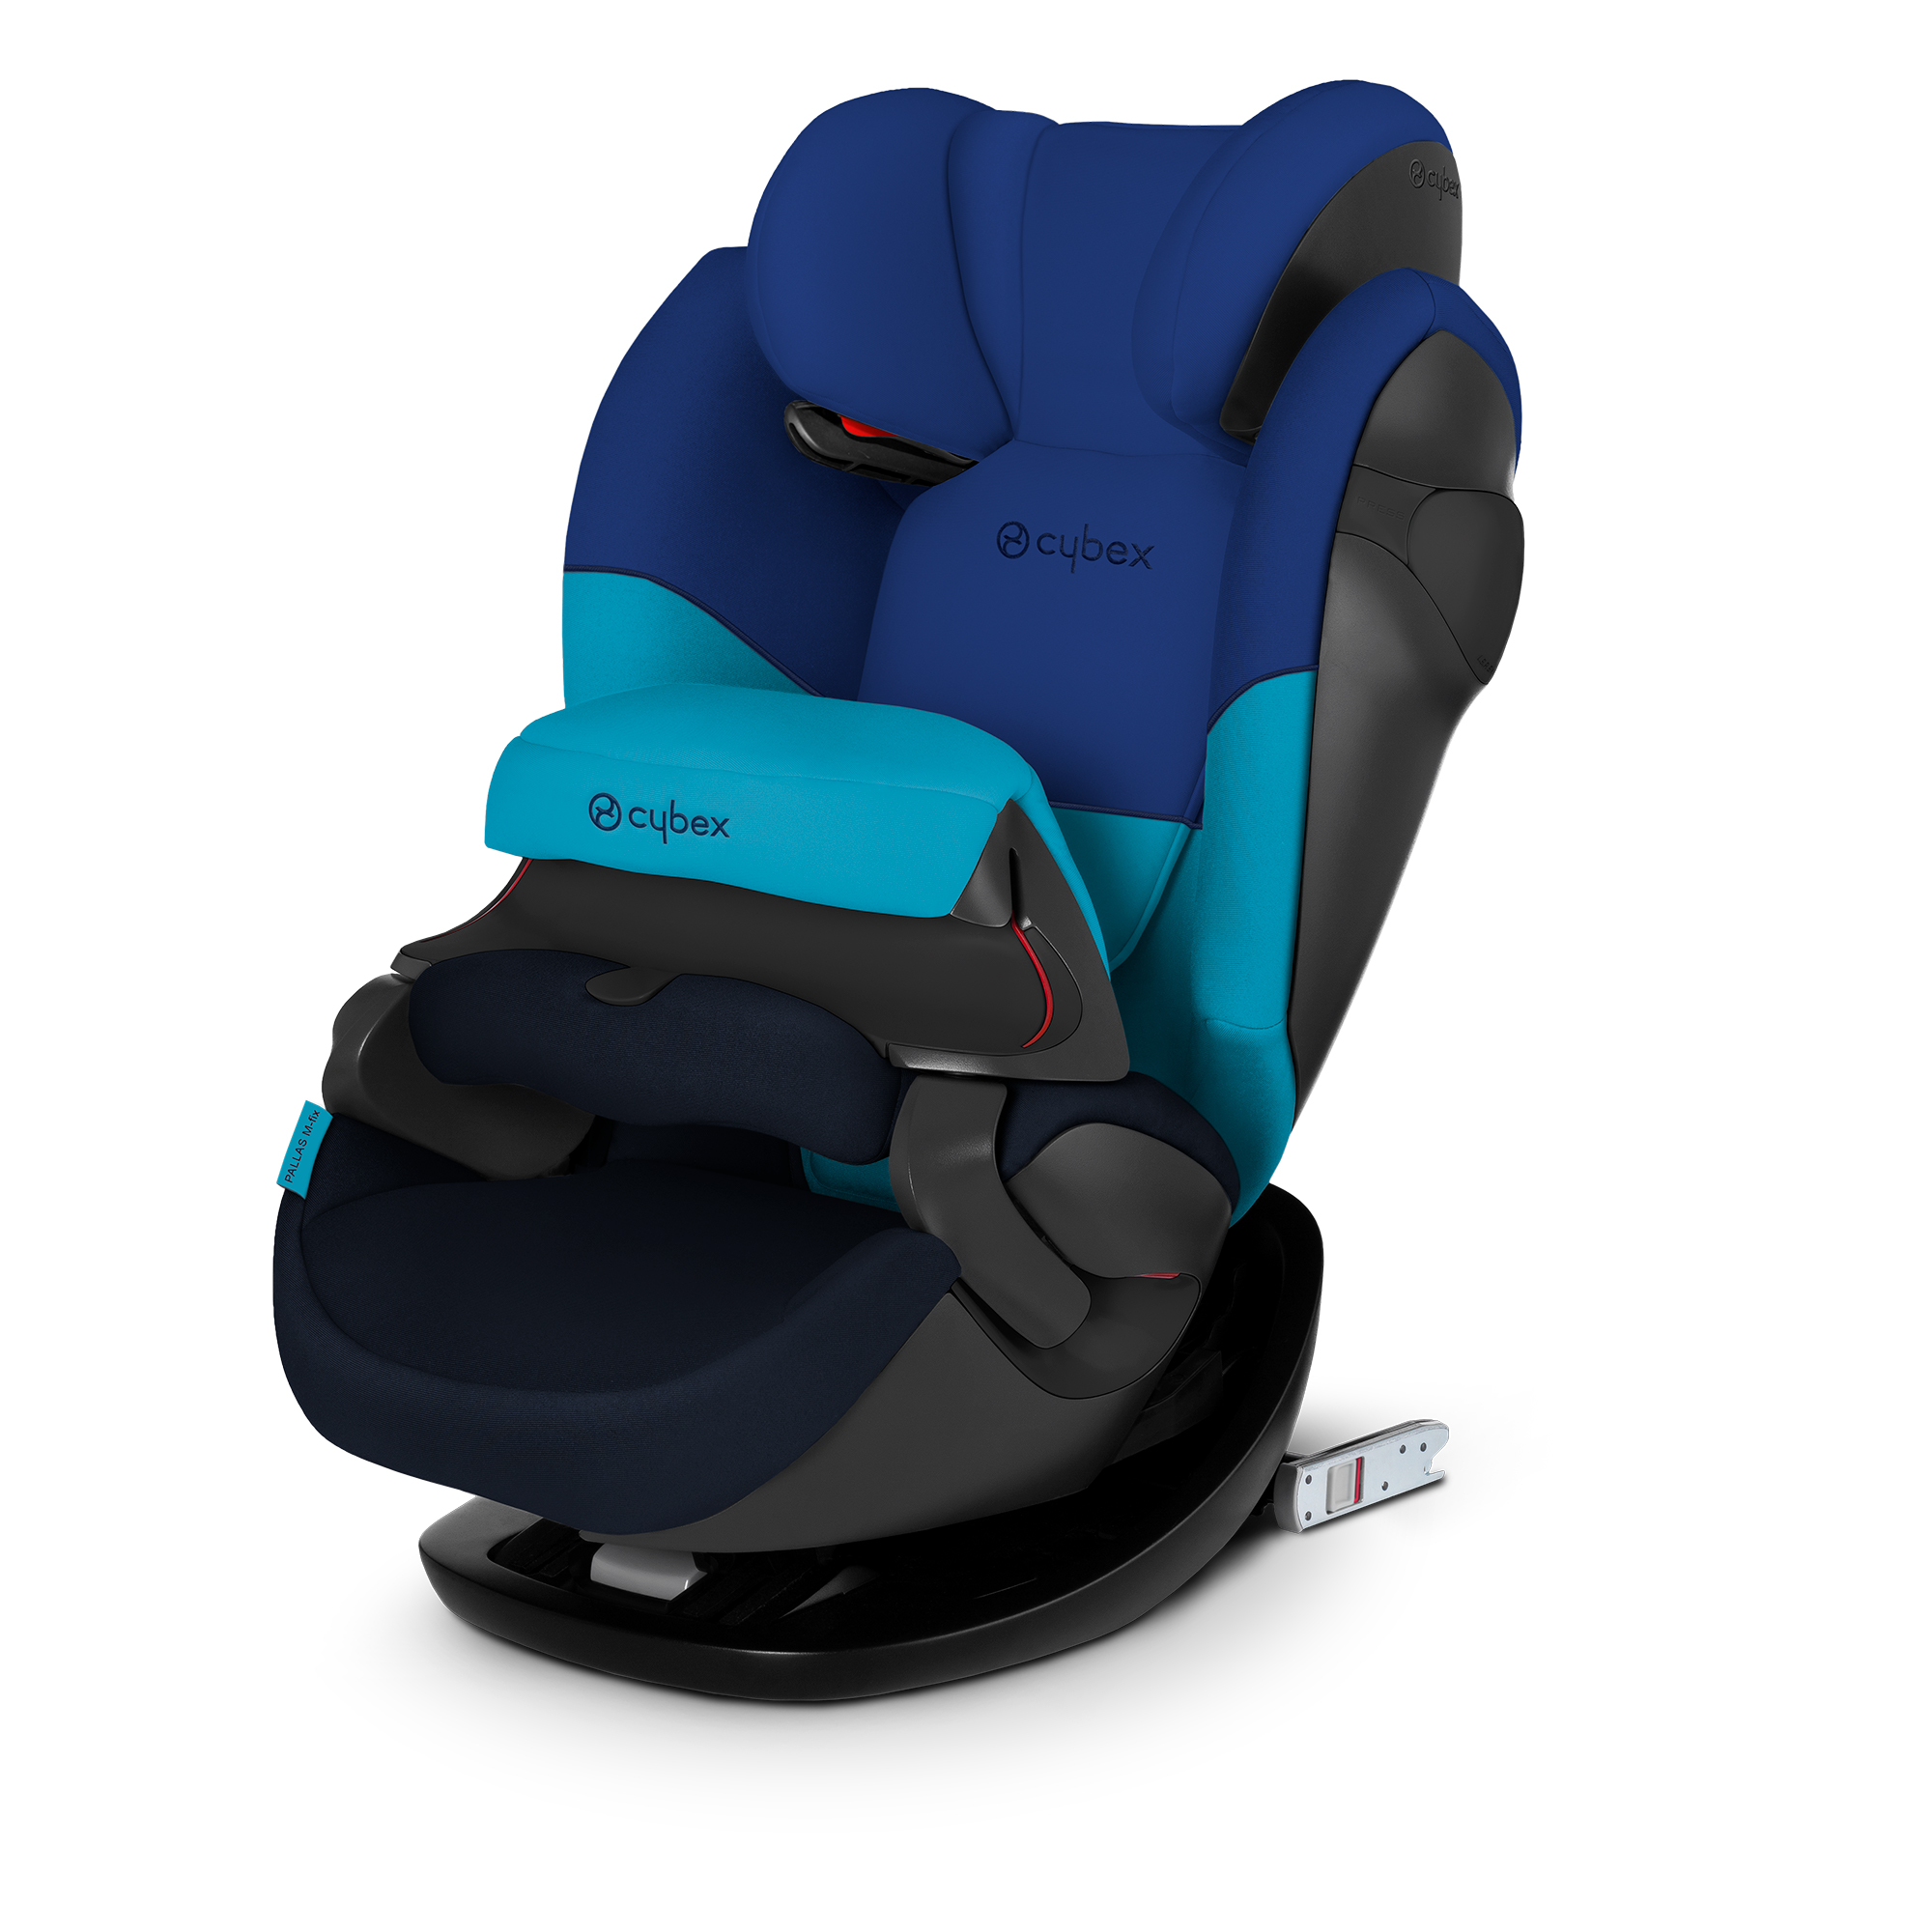 Child Car Safety Seats Cybex 519001093 for girls and boys Baby seat Kids Children chair autocradle booster